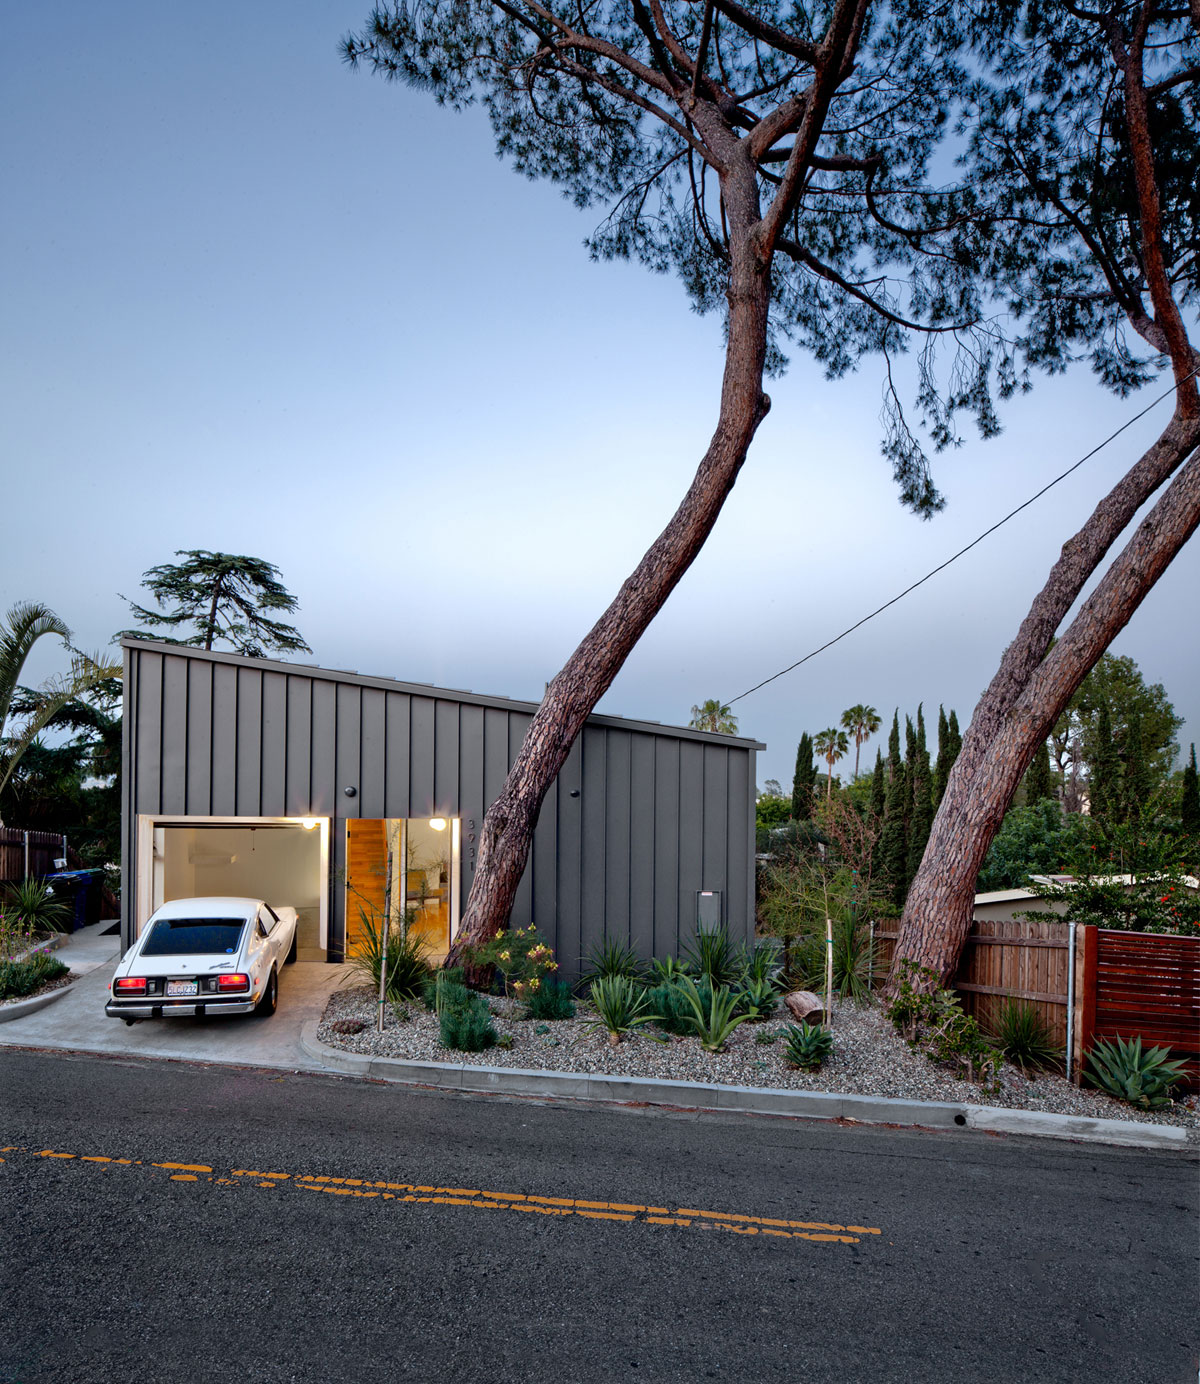 Big small house los angeles by anonymous architects 004 - Maison car park los angeles anonymous architects ...